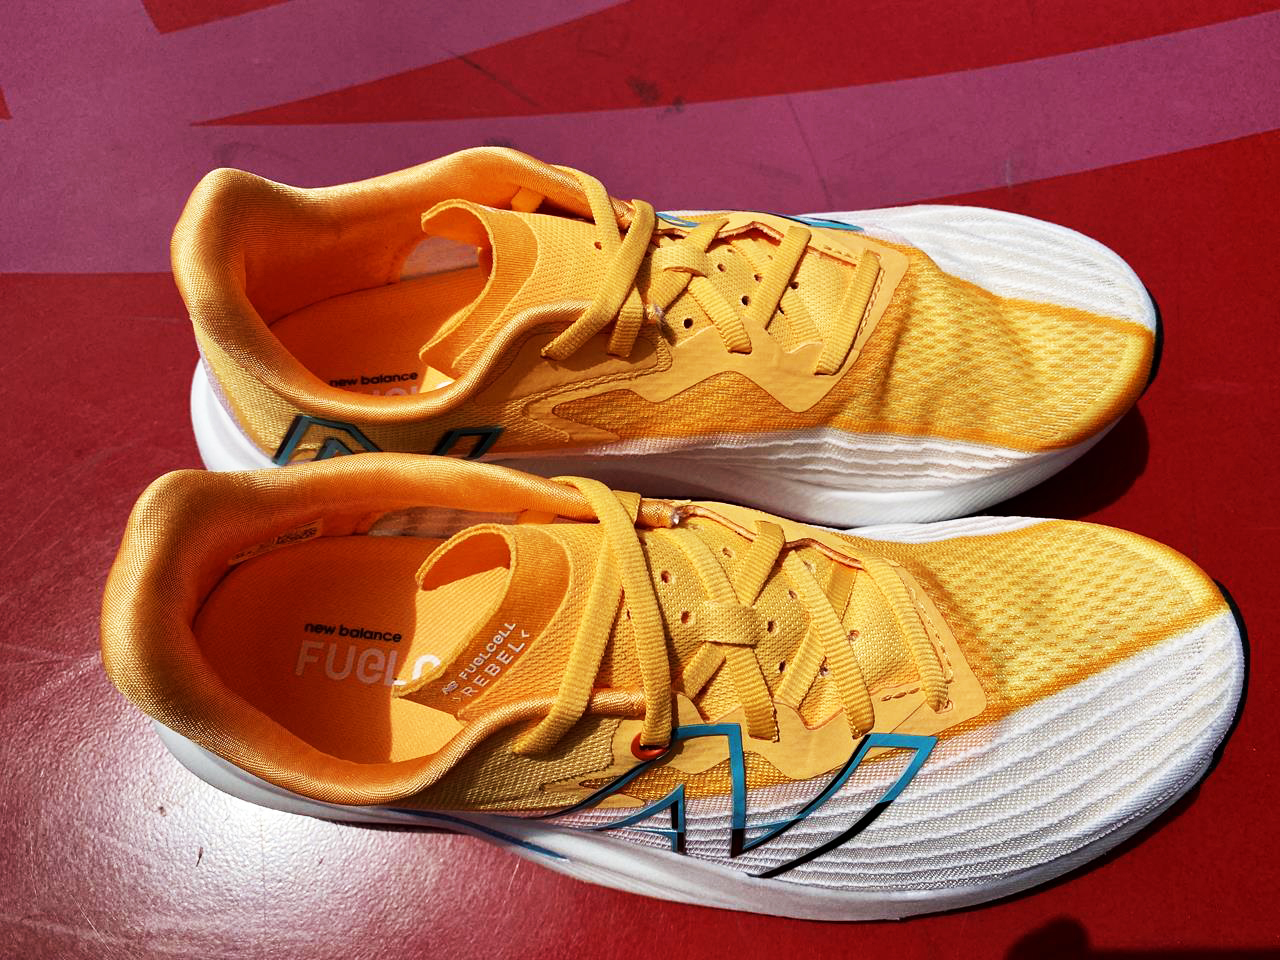 New Balance FuelCell Rebel v2 - Top